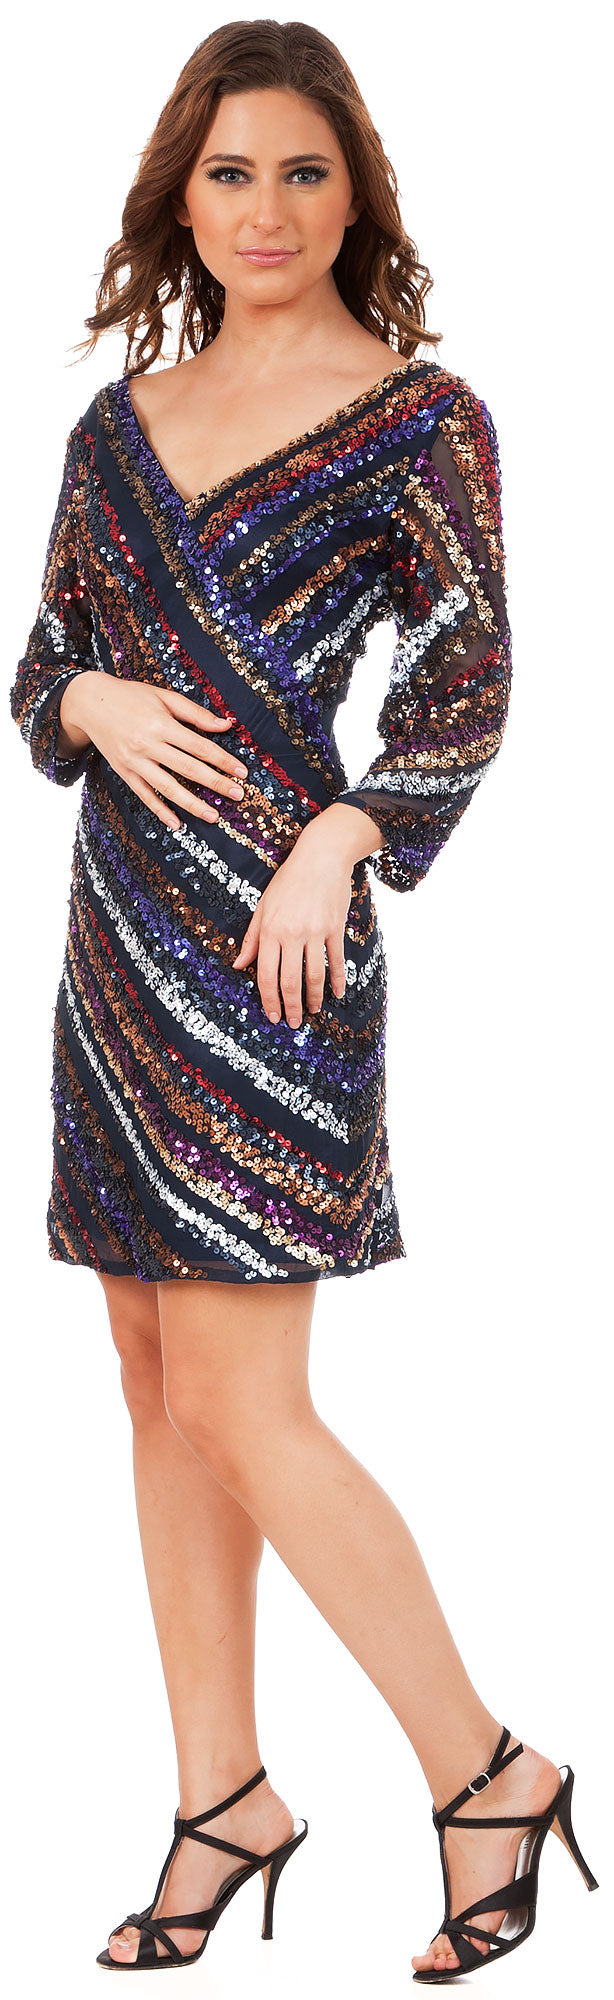 Main image of V-neck Diagonal Sequins Pattern Party Prom Dress